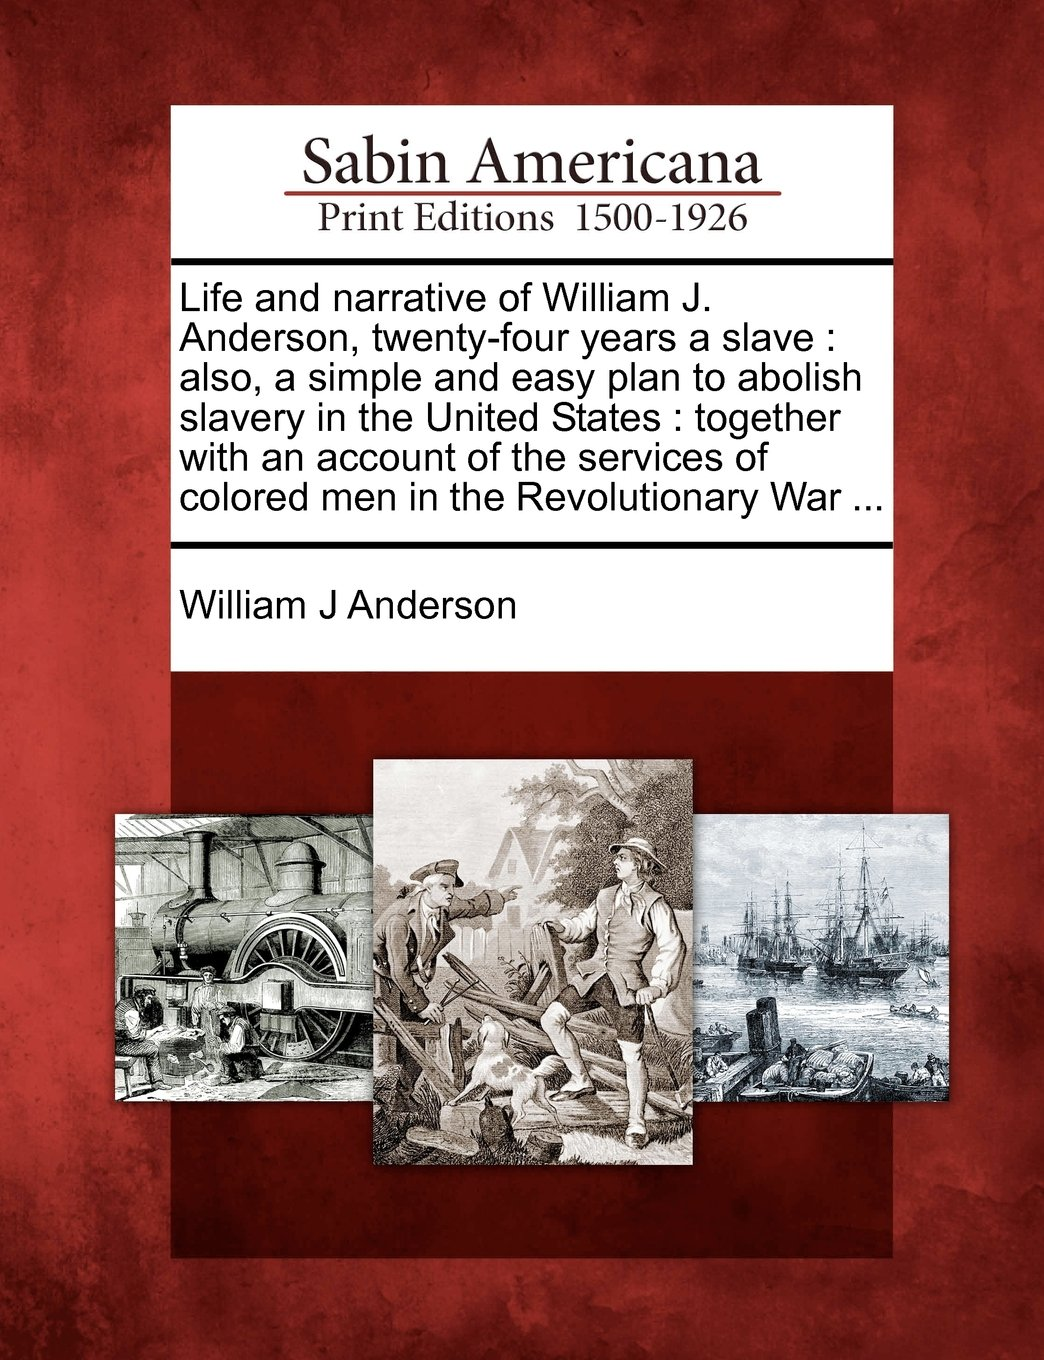 Life and narrative of William J. Anderson, twenty-four years a slave: also, a simple and easy plan to abolish slavery in the United States : together ... of colored men in the Revolutionary War ... ebook